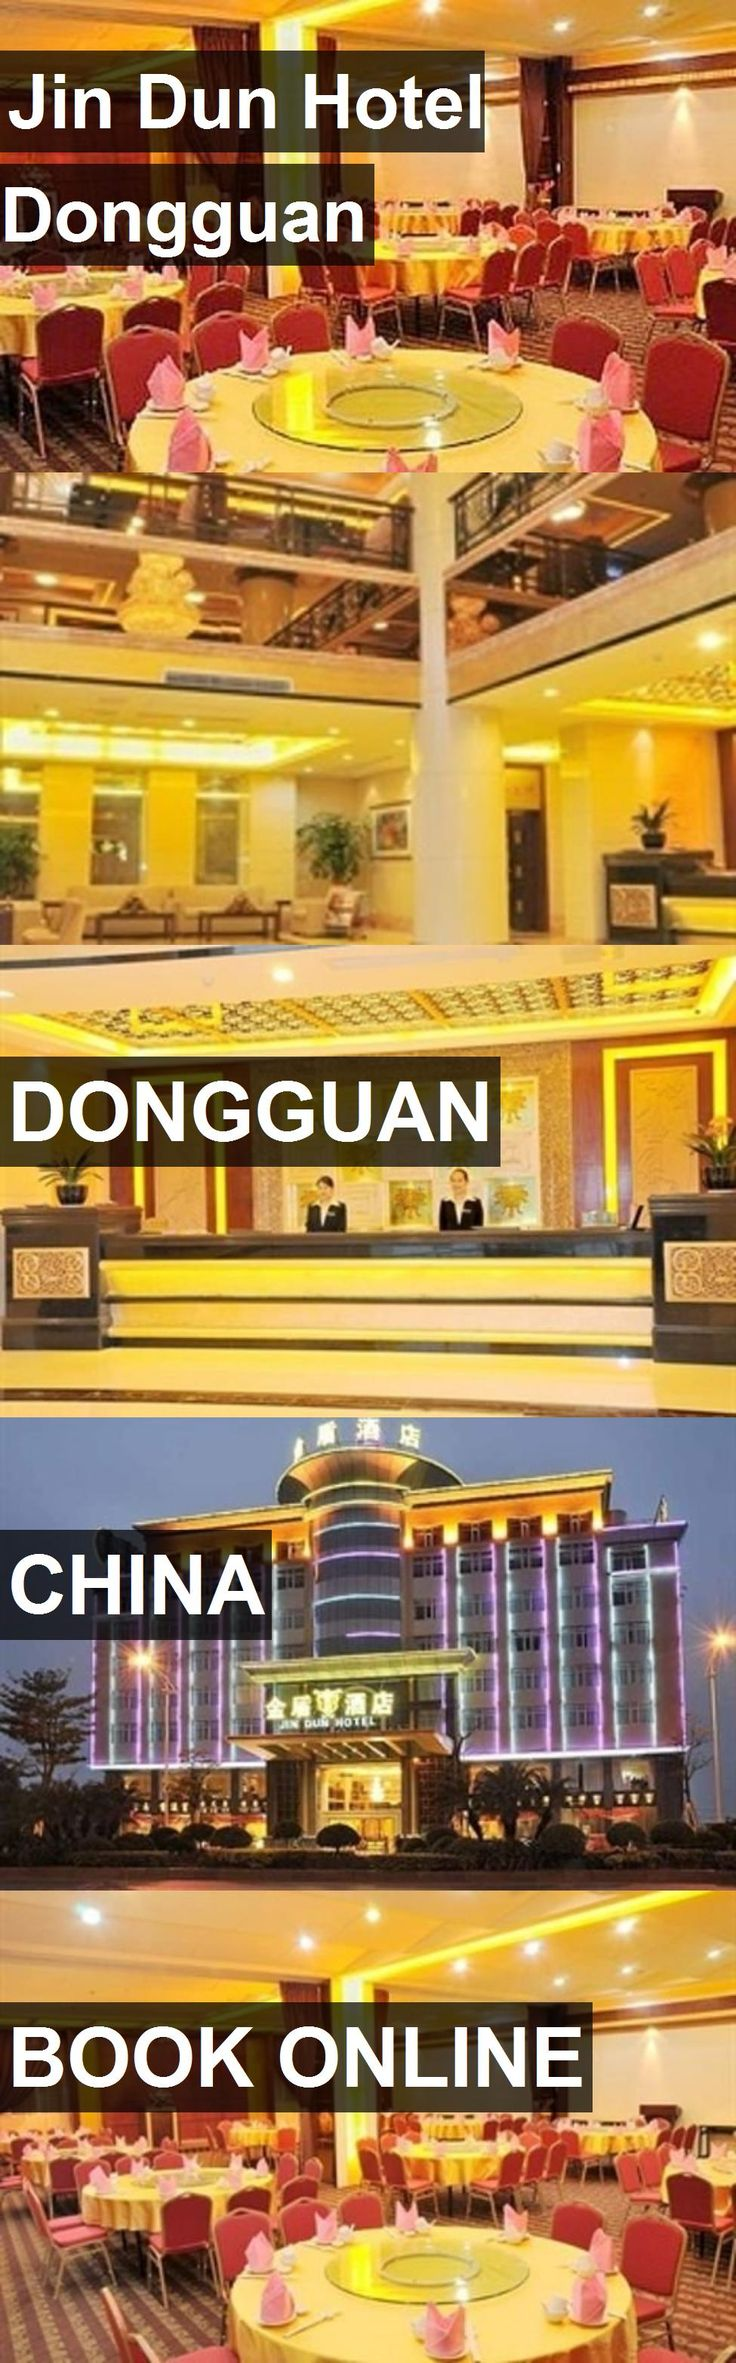 Jin Dun Hotel Dongguan in Dongguan, China. For more information, photos, reviews and best prices please follow the link. #China #Dongguan #travel #vacation #hotel